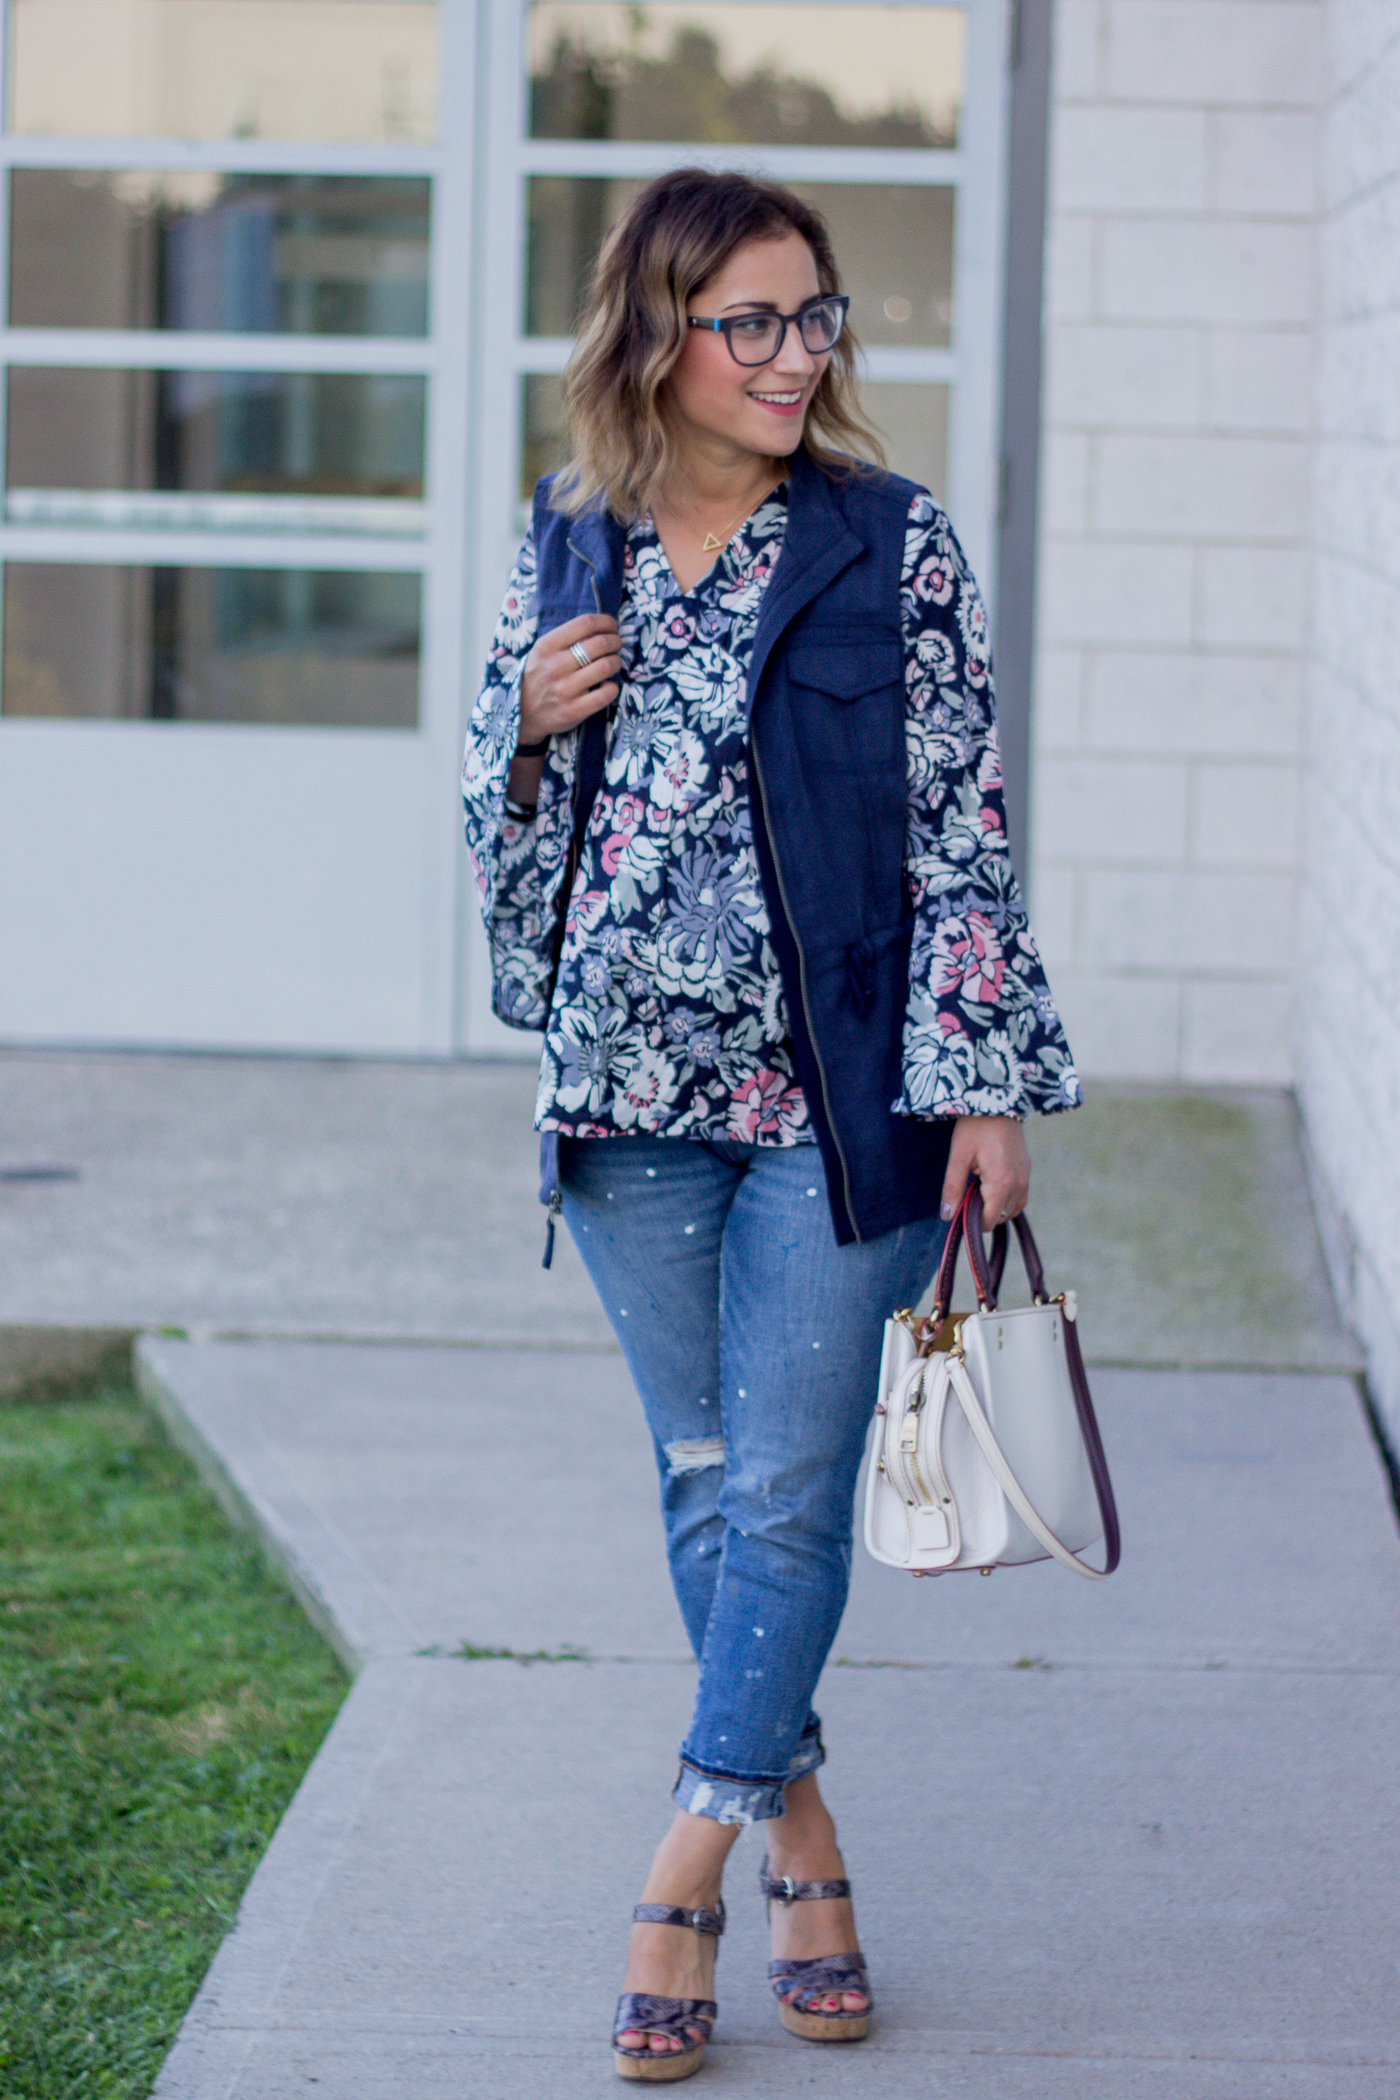 Toronto fashion blogger is wearing a floral bell sleeve top from Amazon, with a navy cargo vest from Target, with Gap jeans